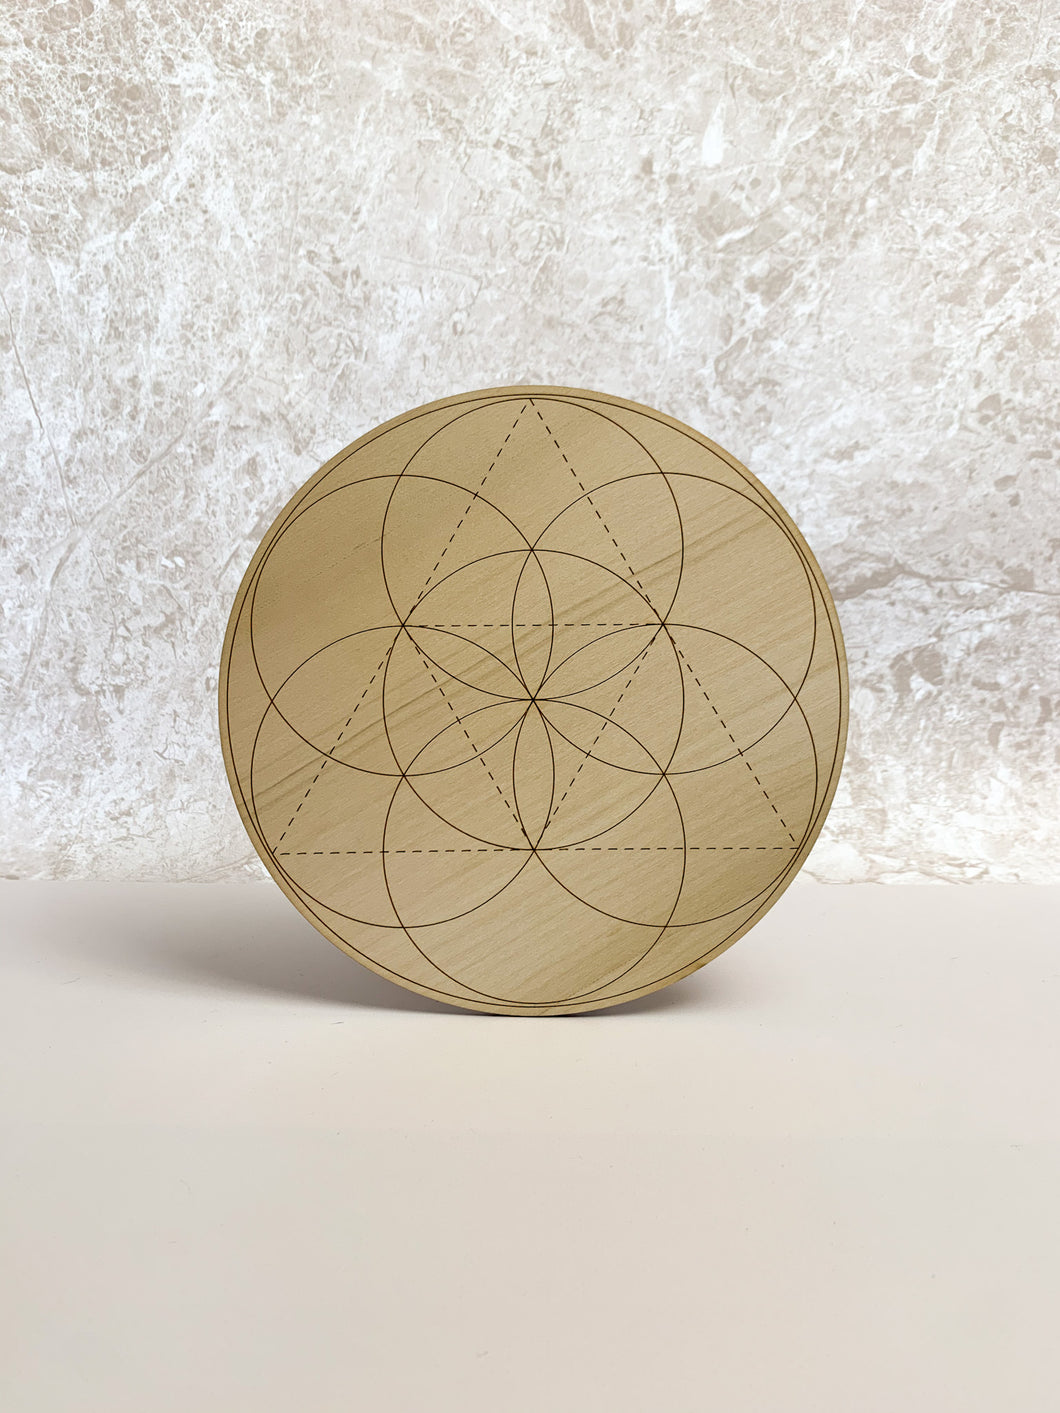 Seed of Life Crystal Grid Divination Board by Yiska Designs